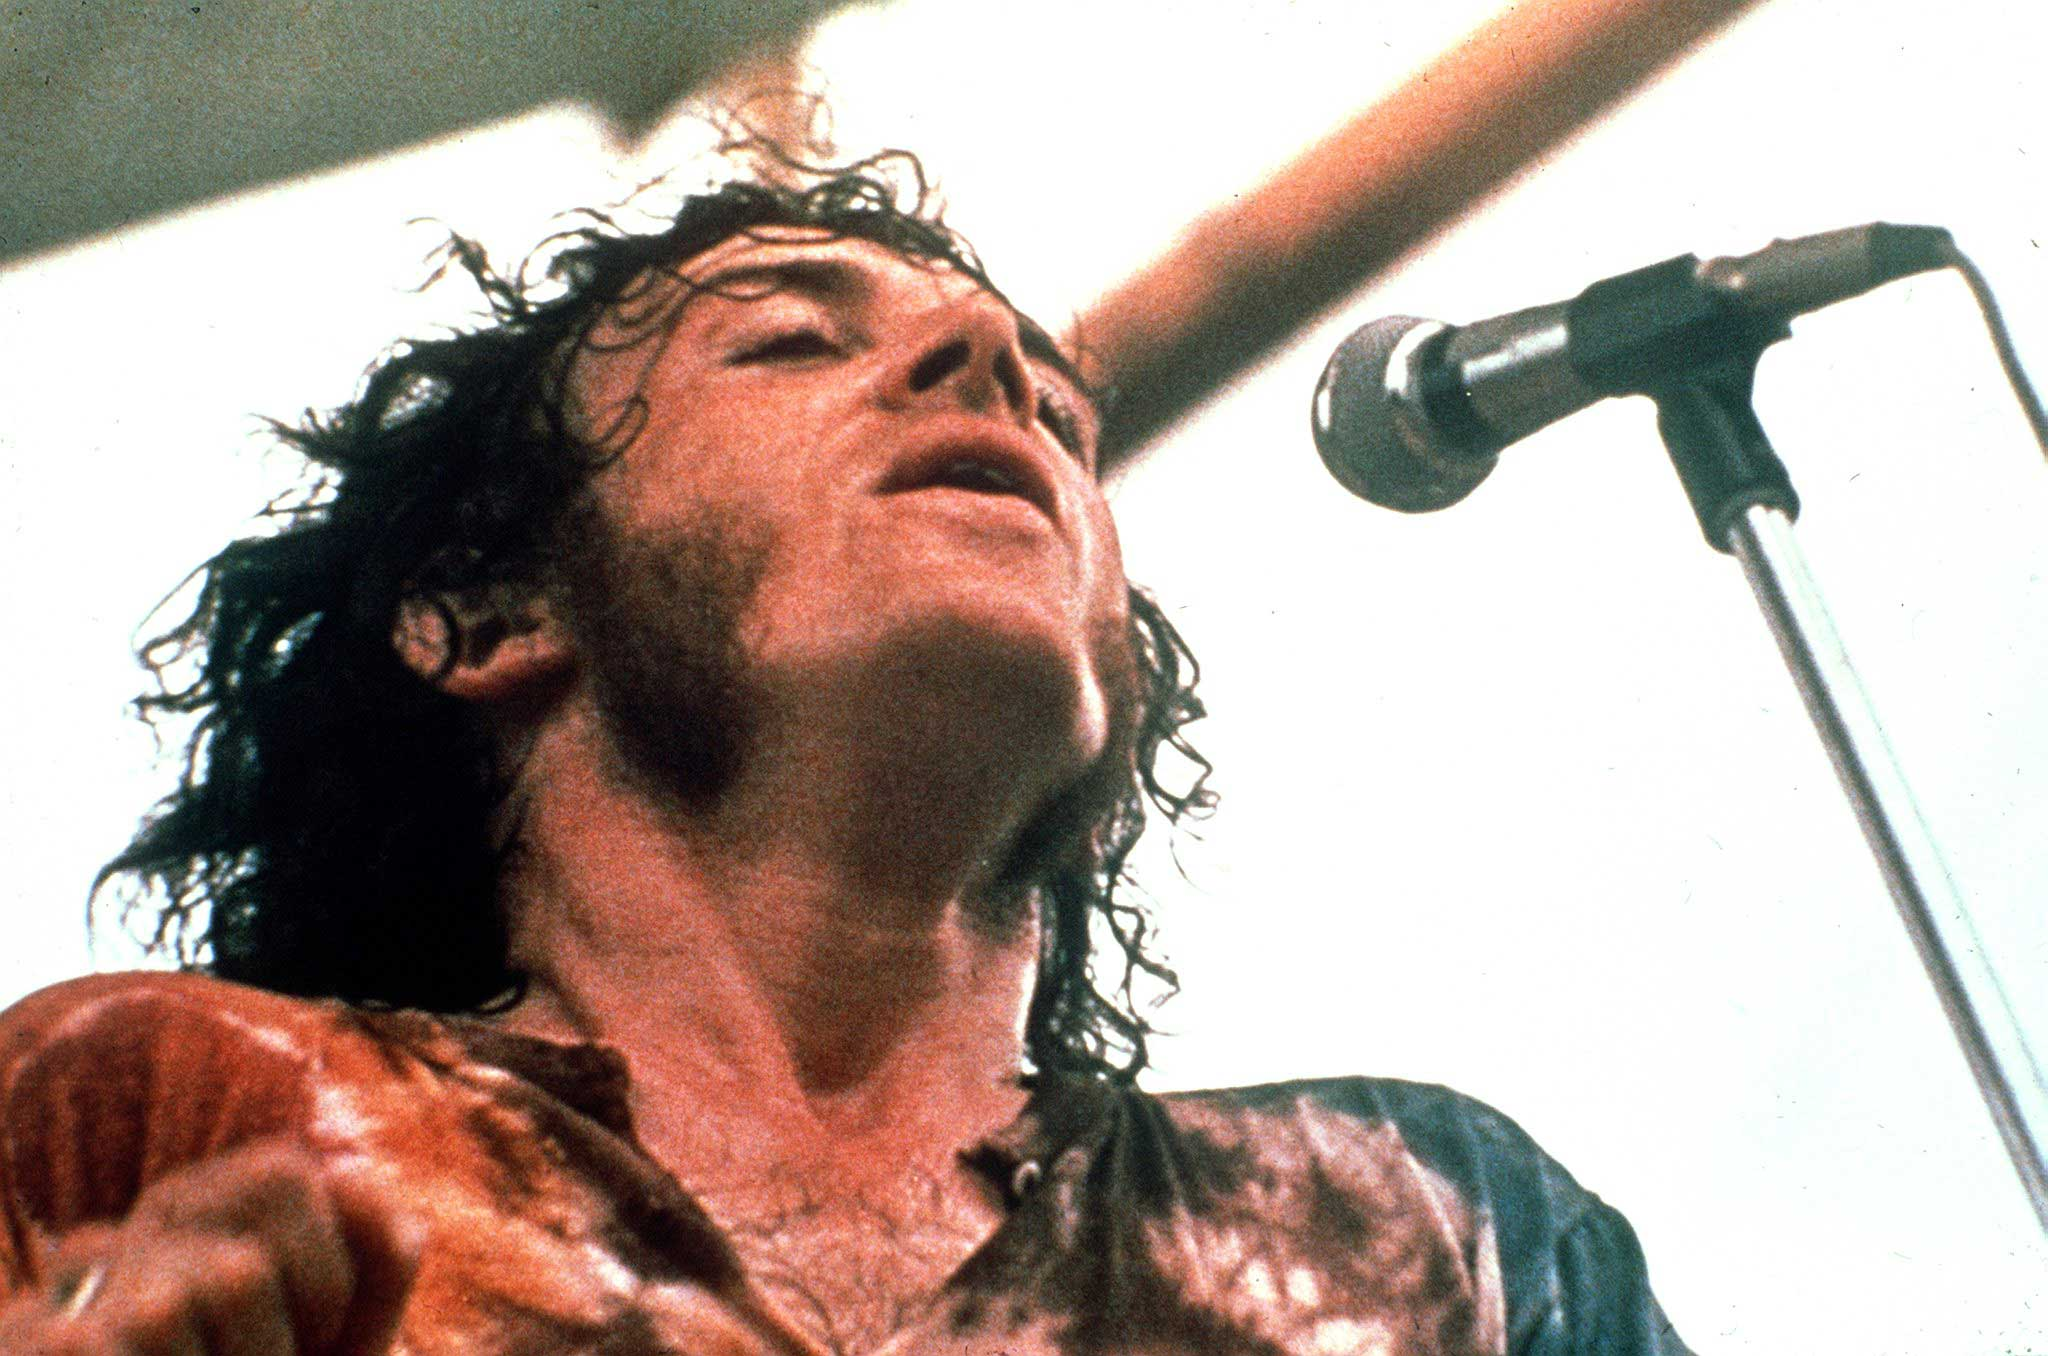 Joe Cocker performs at the Woodstock Festival of Arts and Music in Bethel, New York, Aug. 1969.